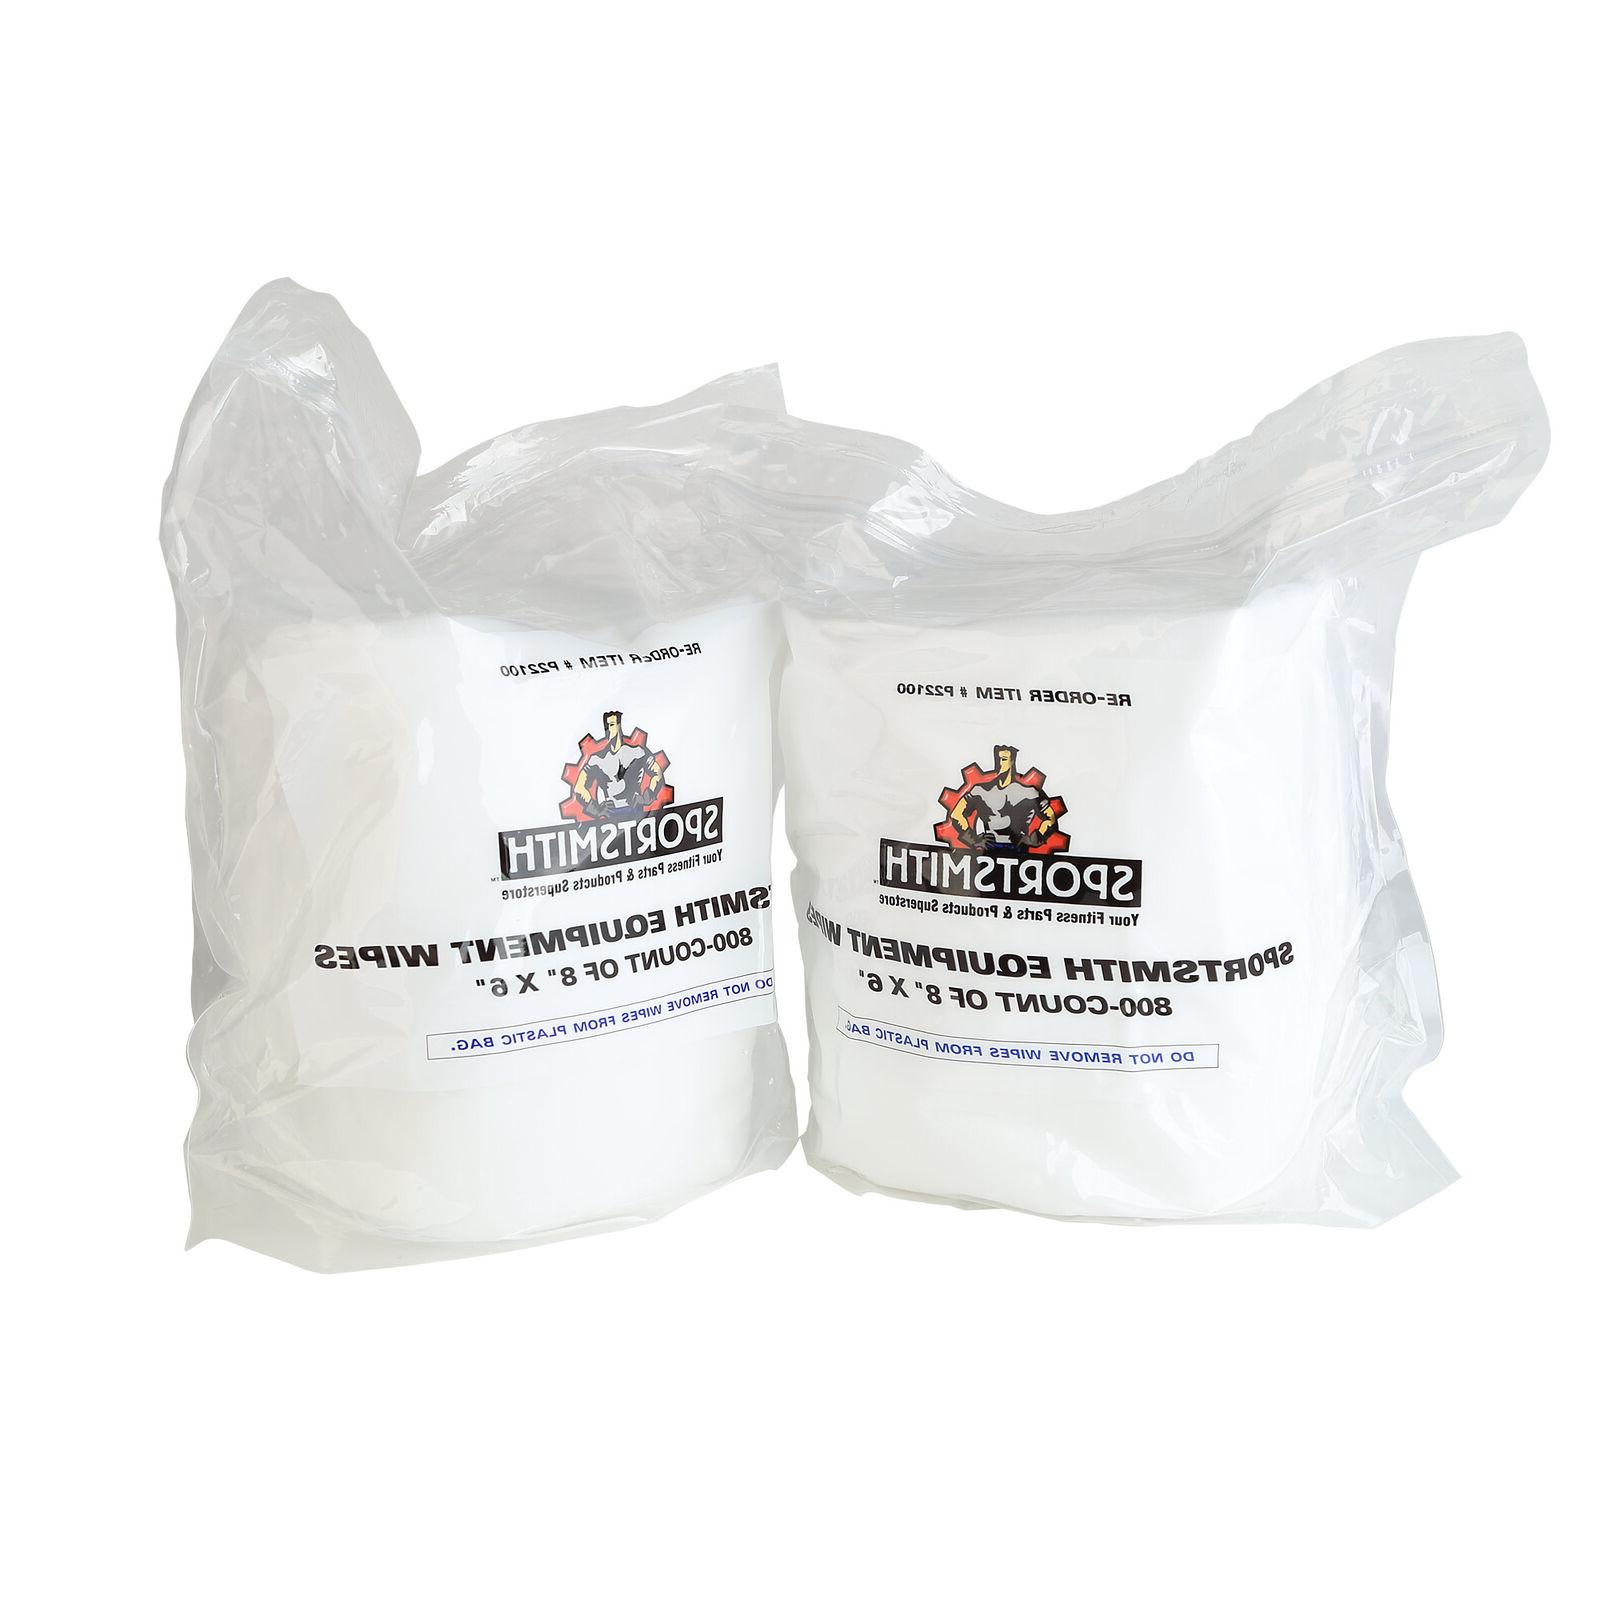 Fitness & Gym Equipment Cleaning Wipes, Case